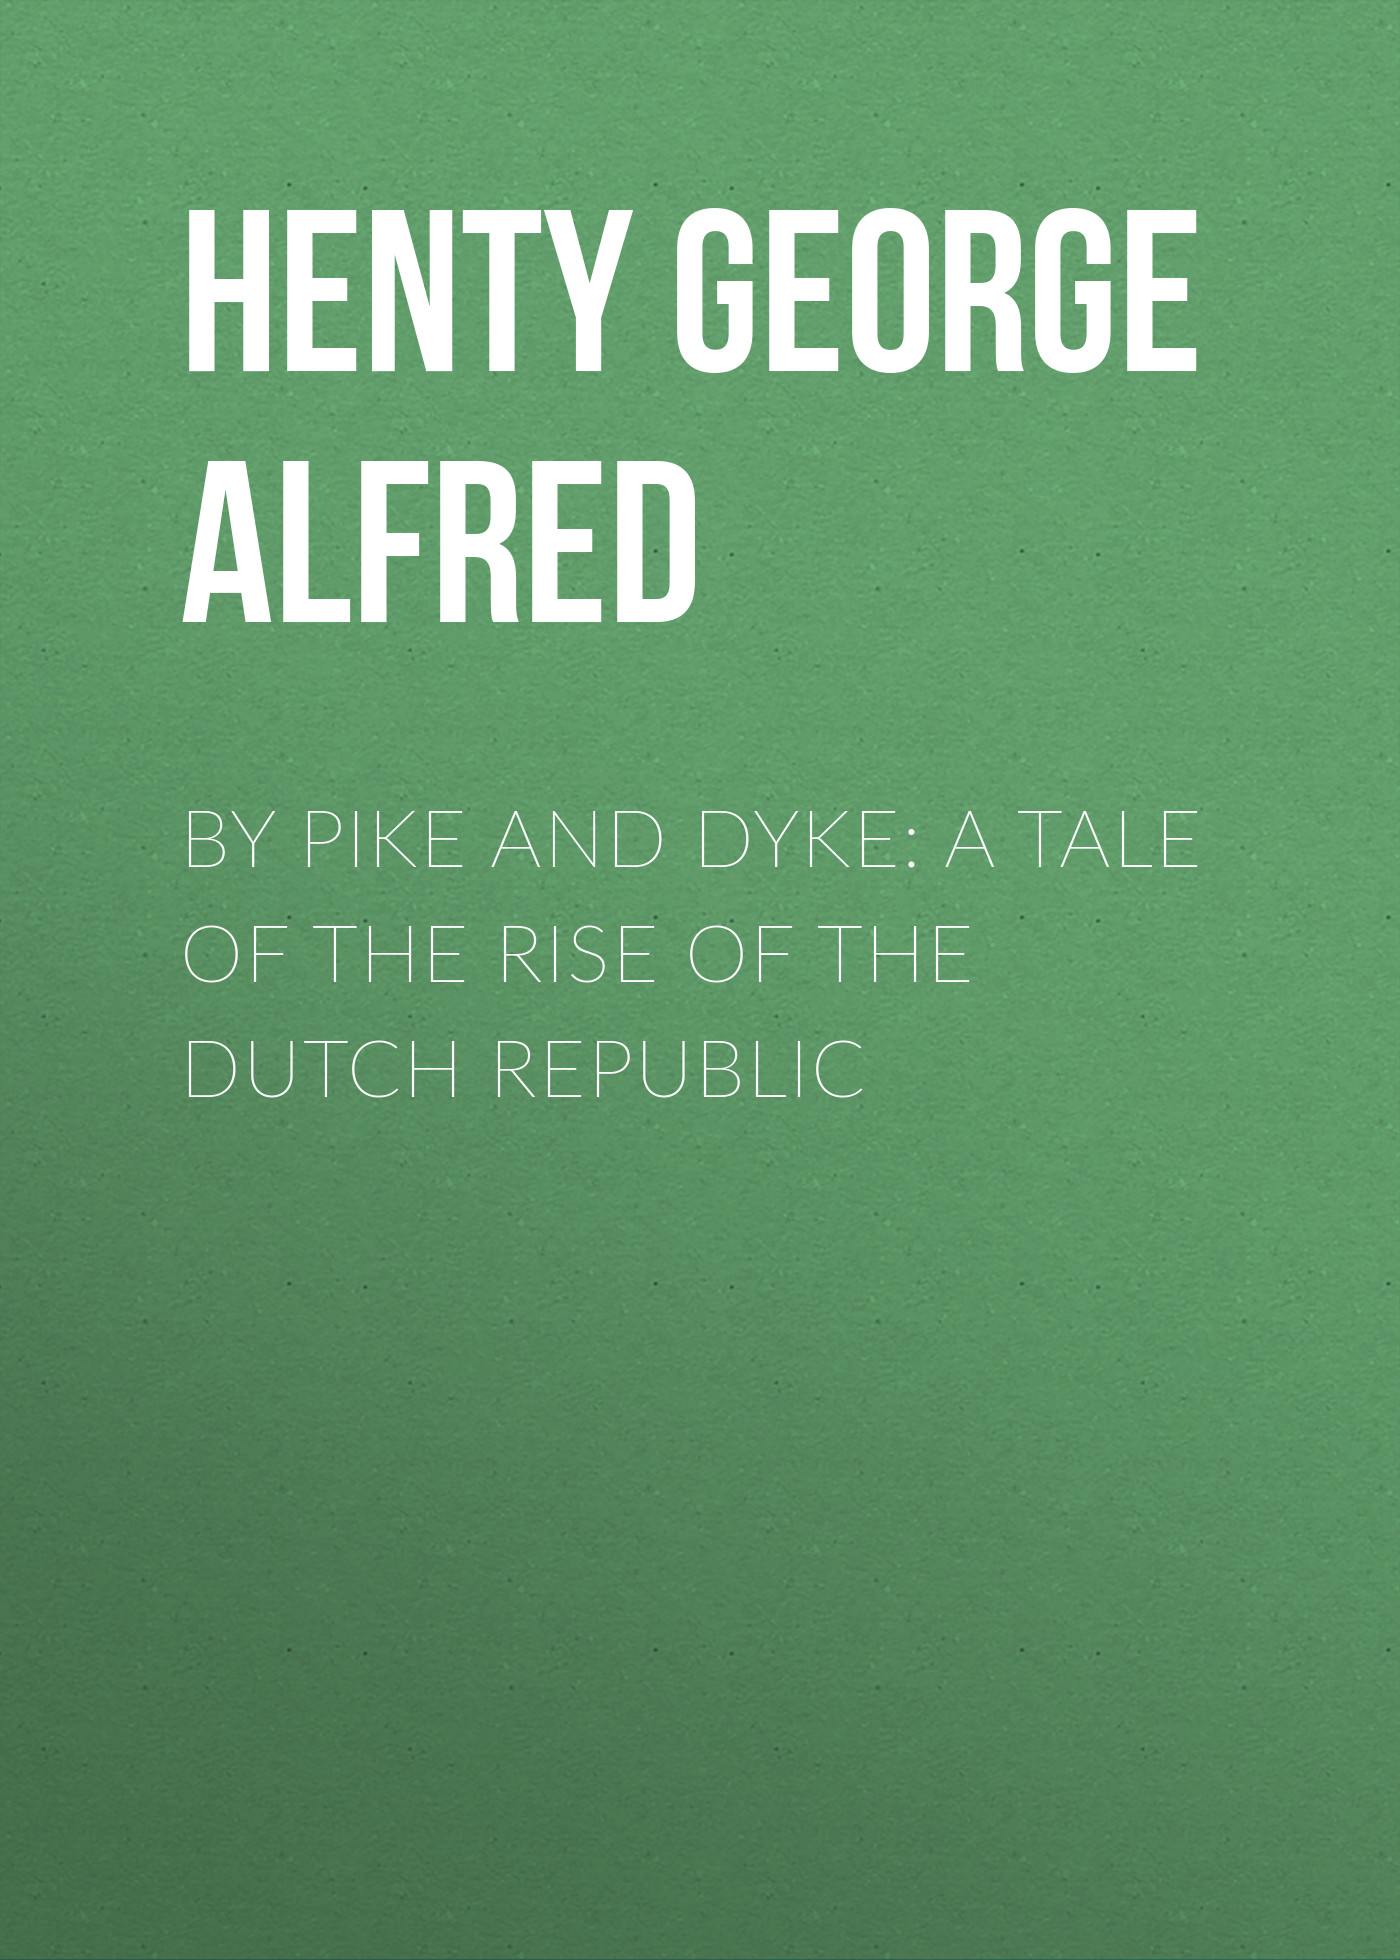 Henty George Alfred By Pike and Dyke: a Tale of the Rise of the Dutch Republic henty george alfred redskin and cow boy a tale of the western plains